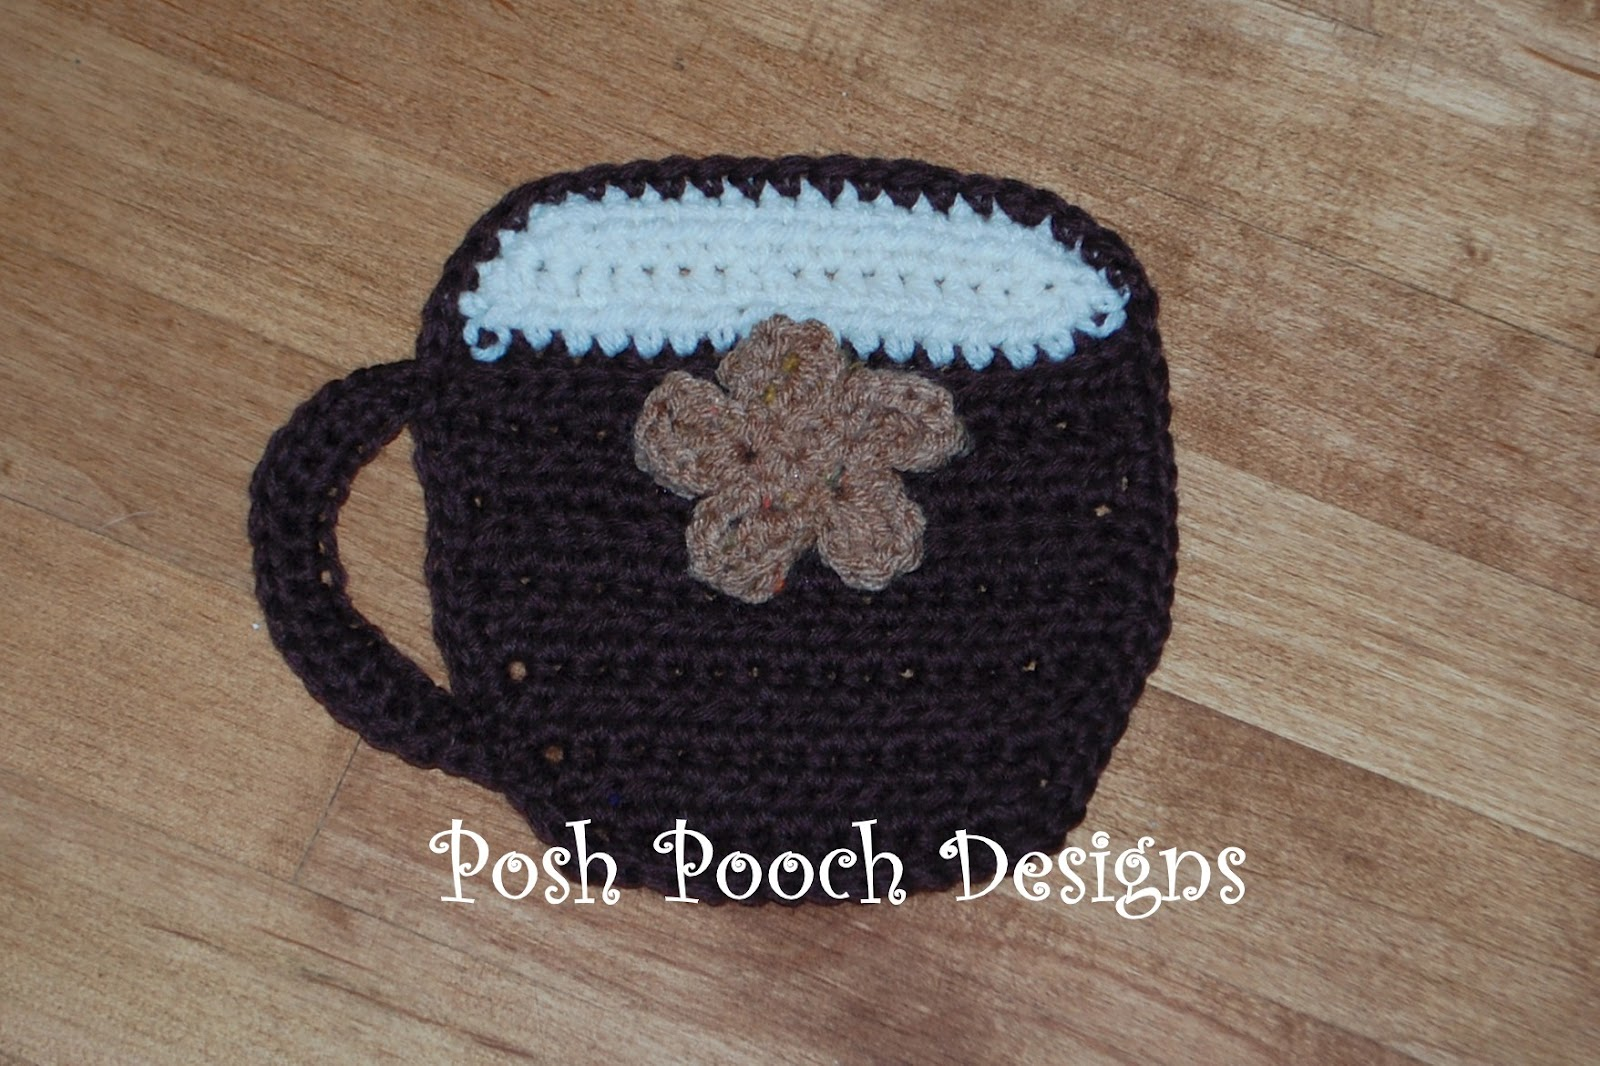 Posh Pooch Designs Dog Clothes: Coffee Cup Hot Pad Crochet ...